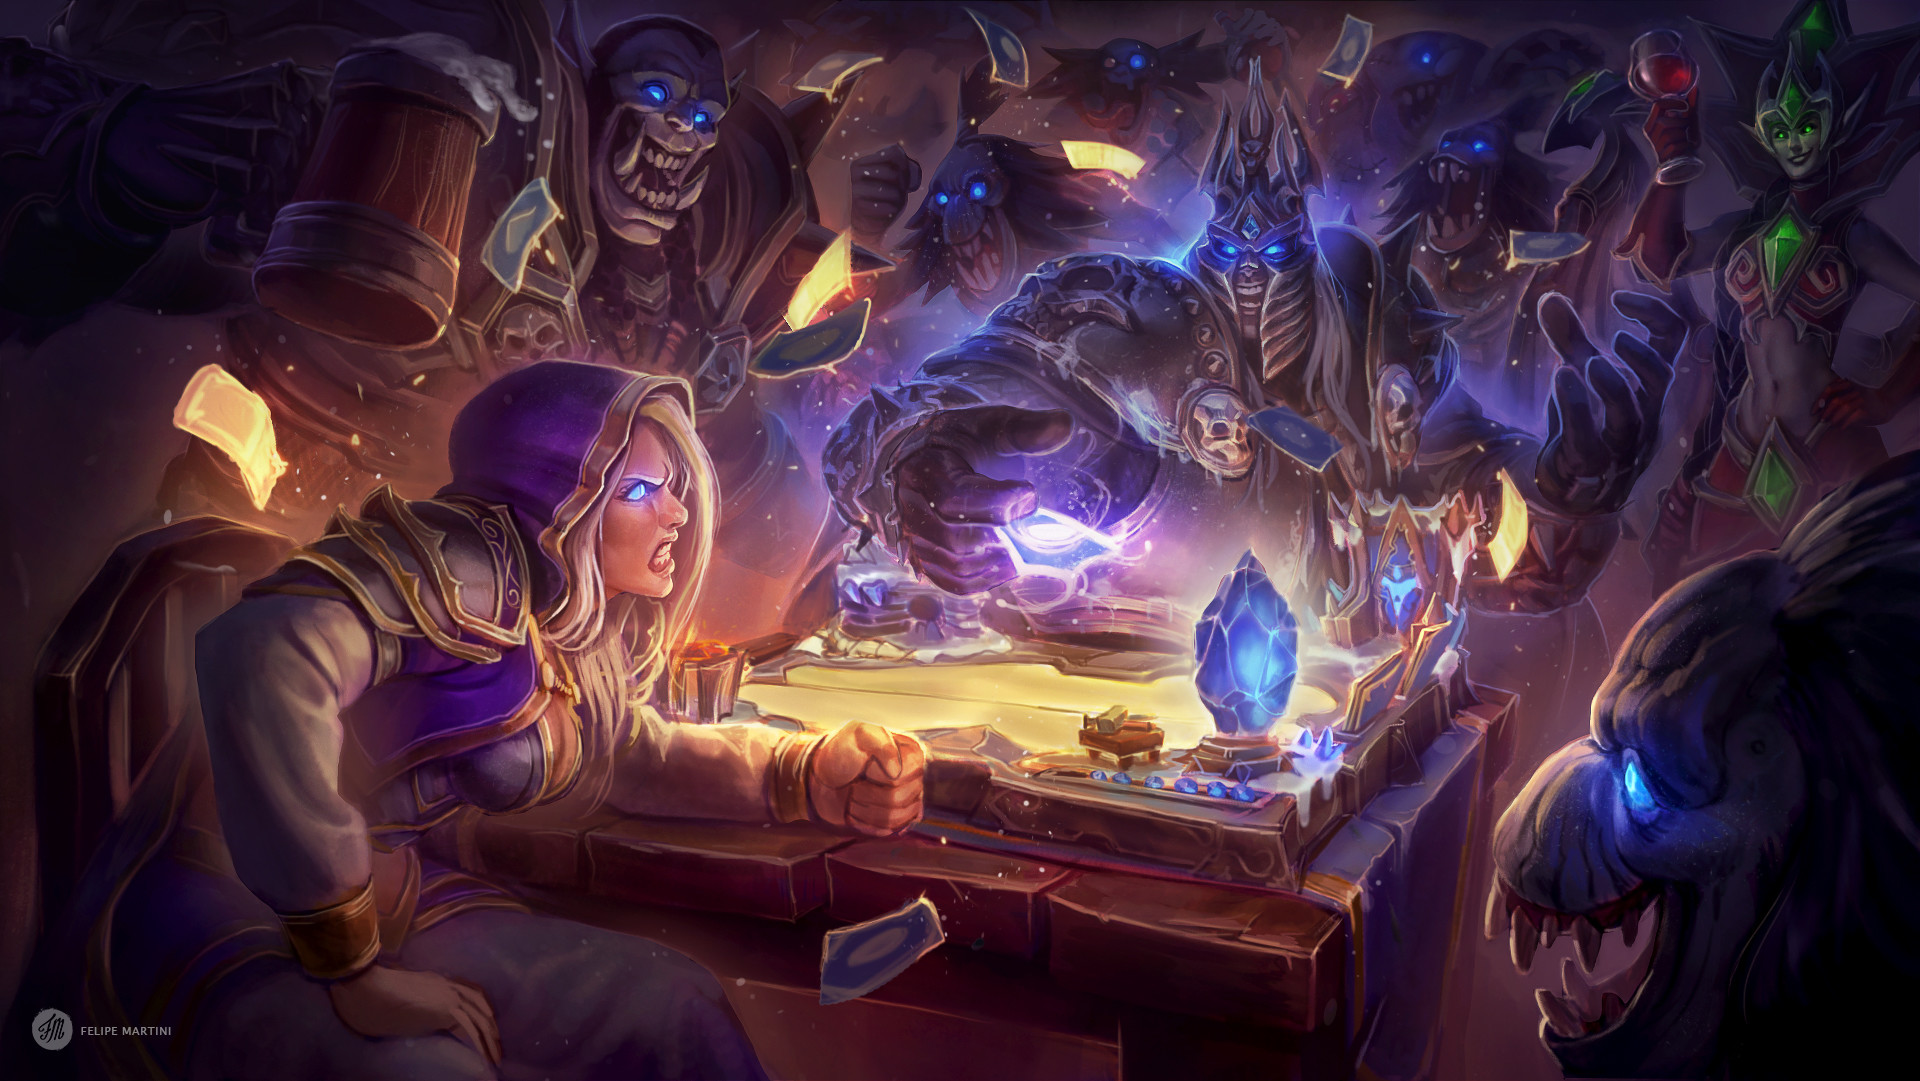 Hearthstone - Jaina vs Lich King - Arte por Felipe Martini